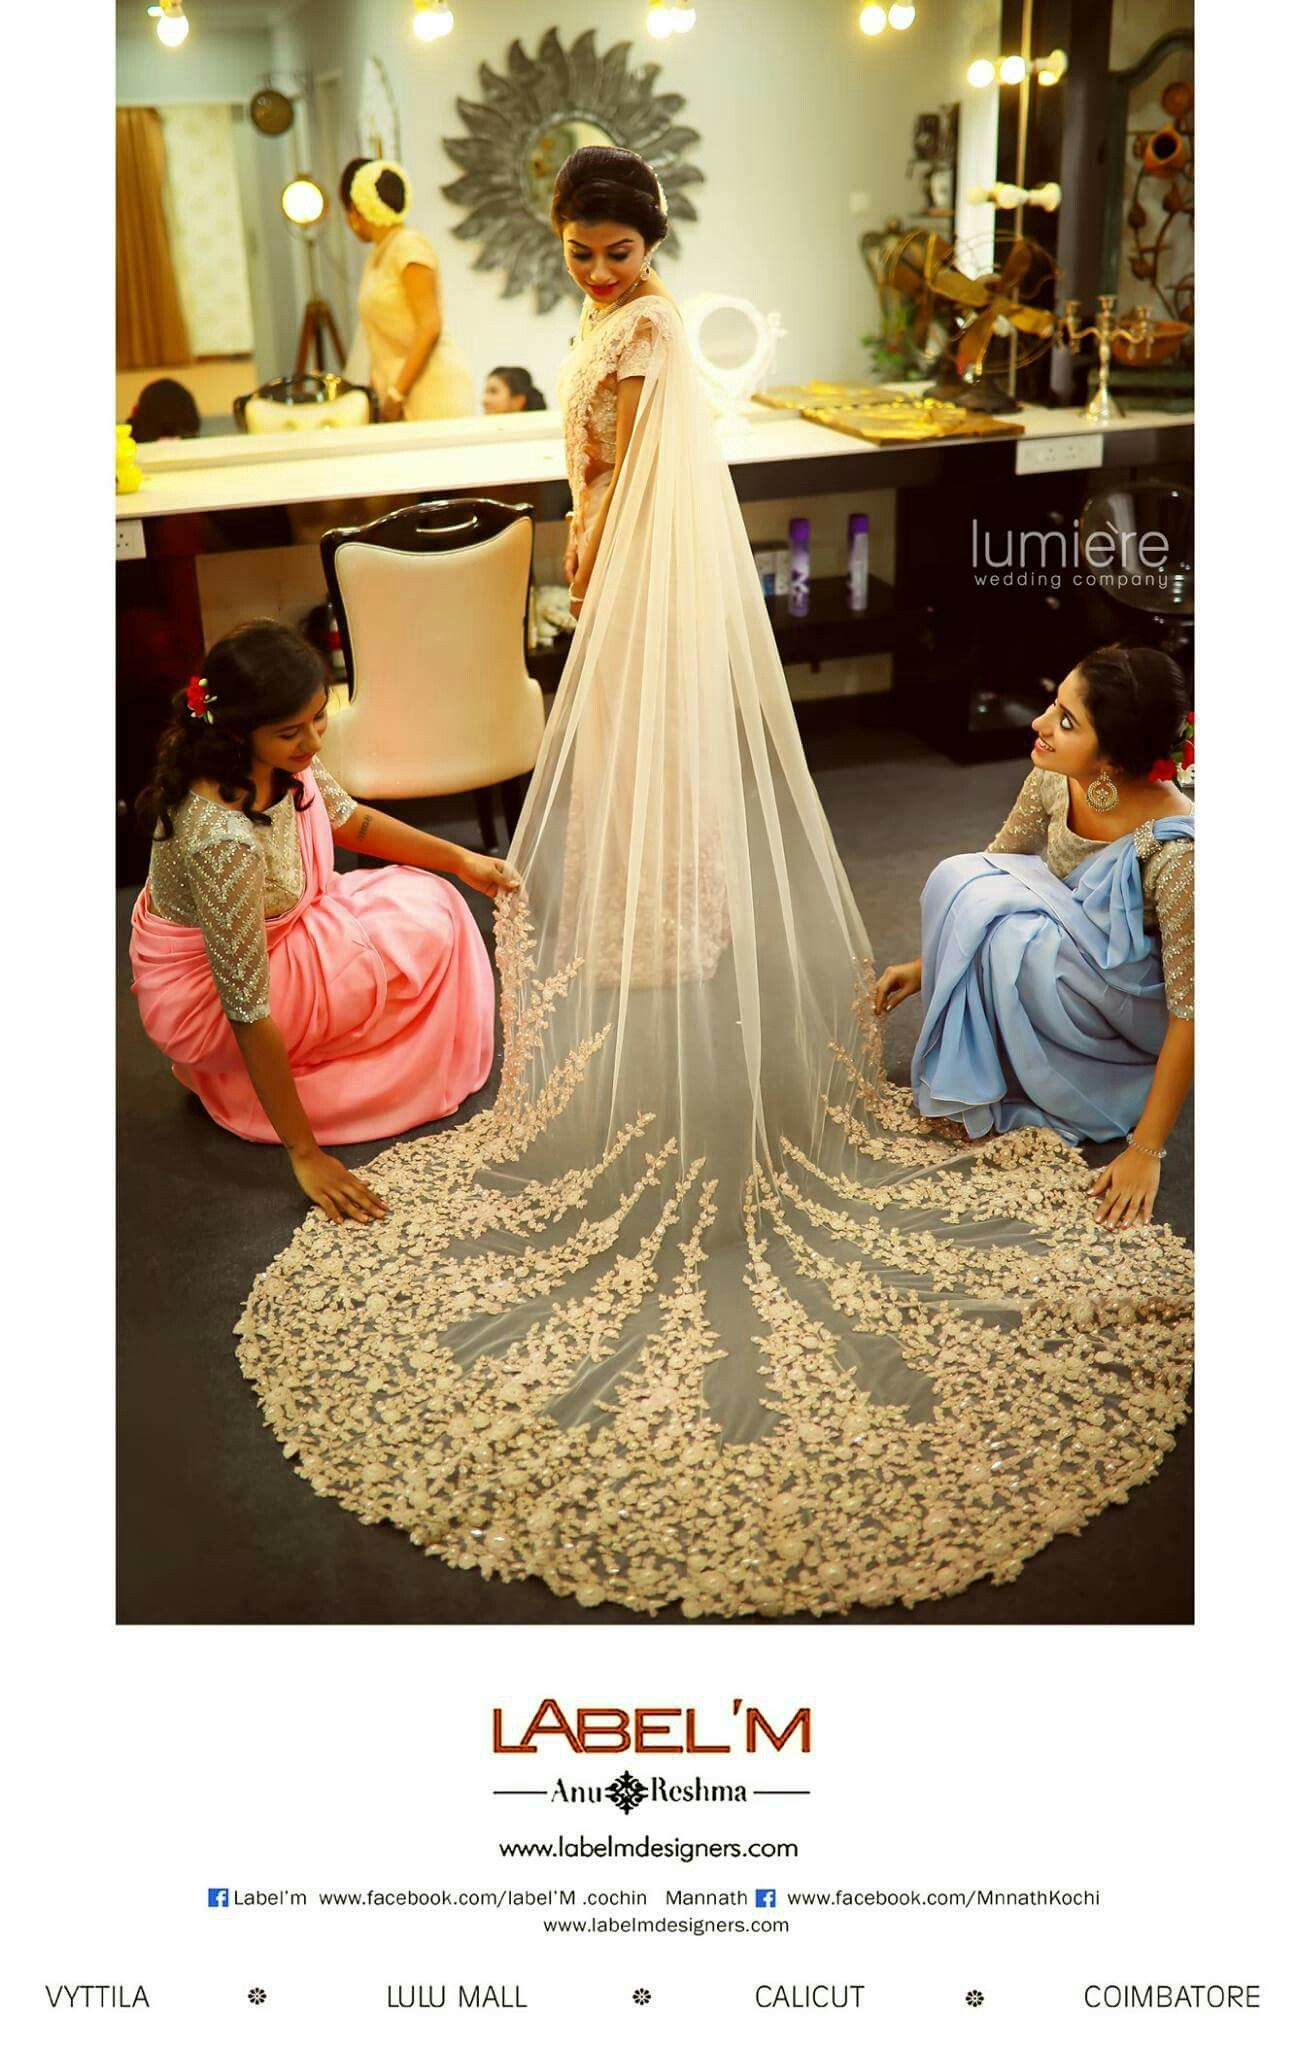 Pin By Rzmn On Bridal Gowns Christian Bridal Saree Christian Wedding Sarees Christian Wedding Gowns